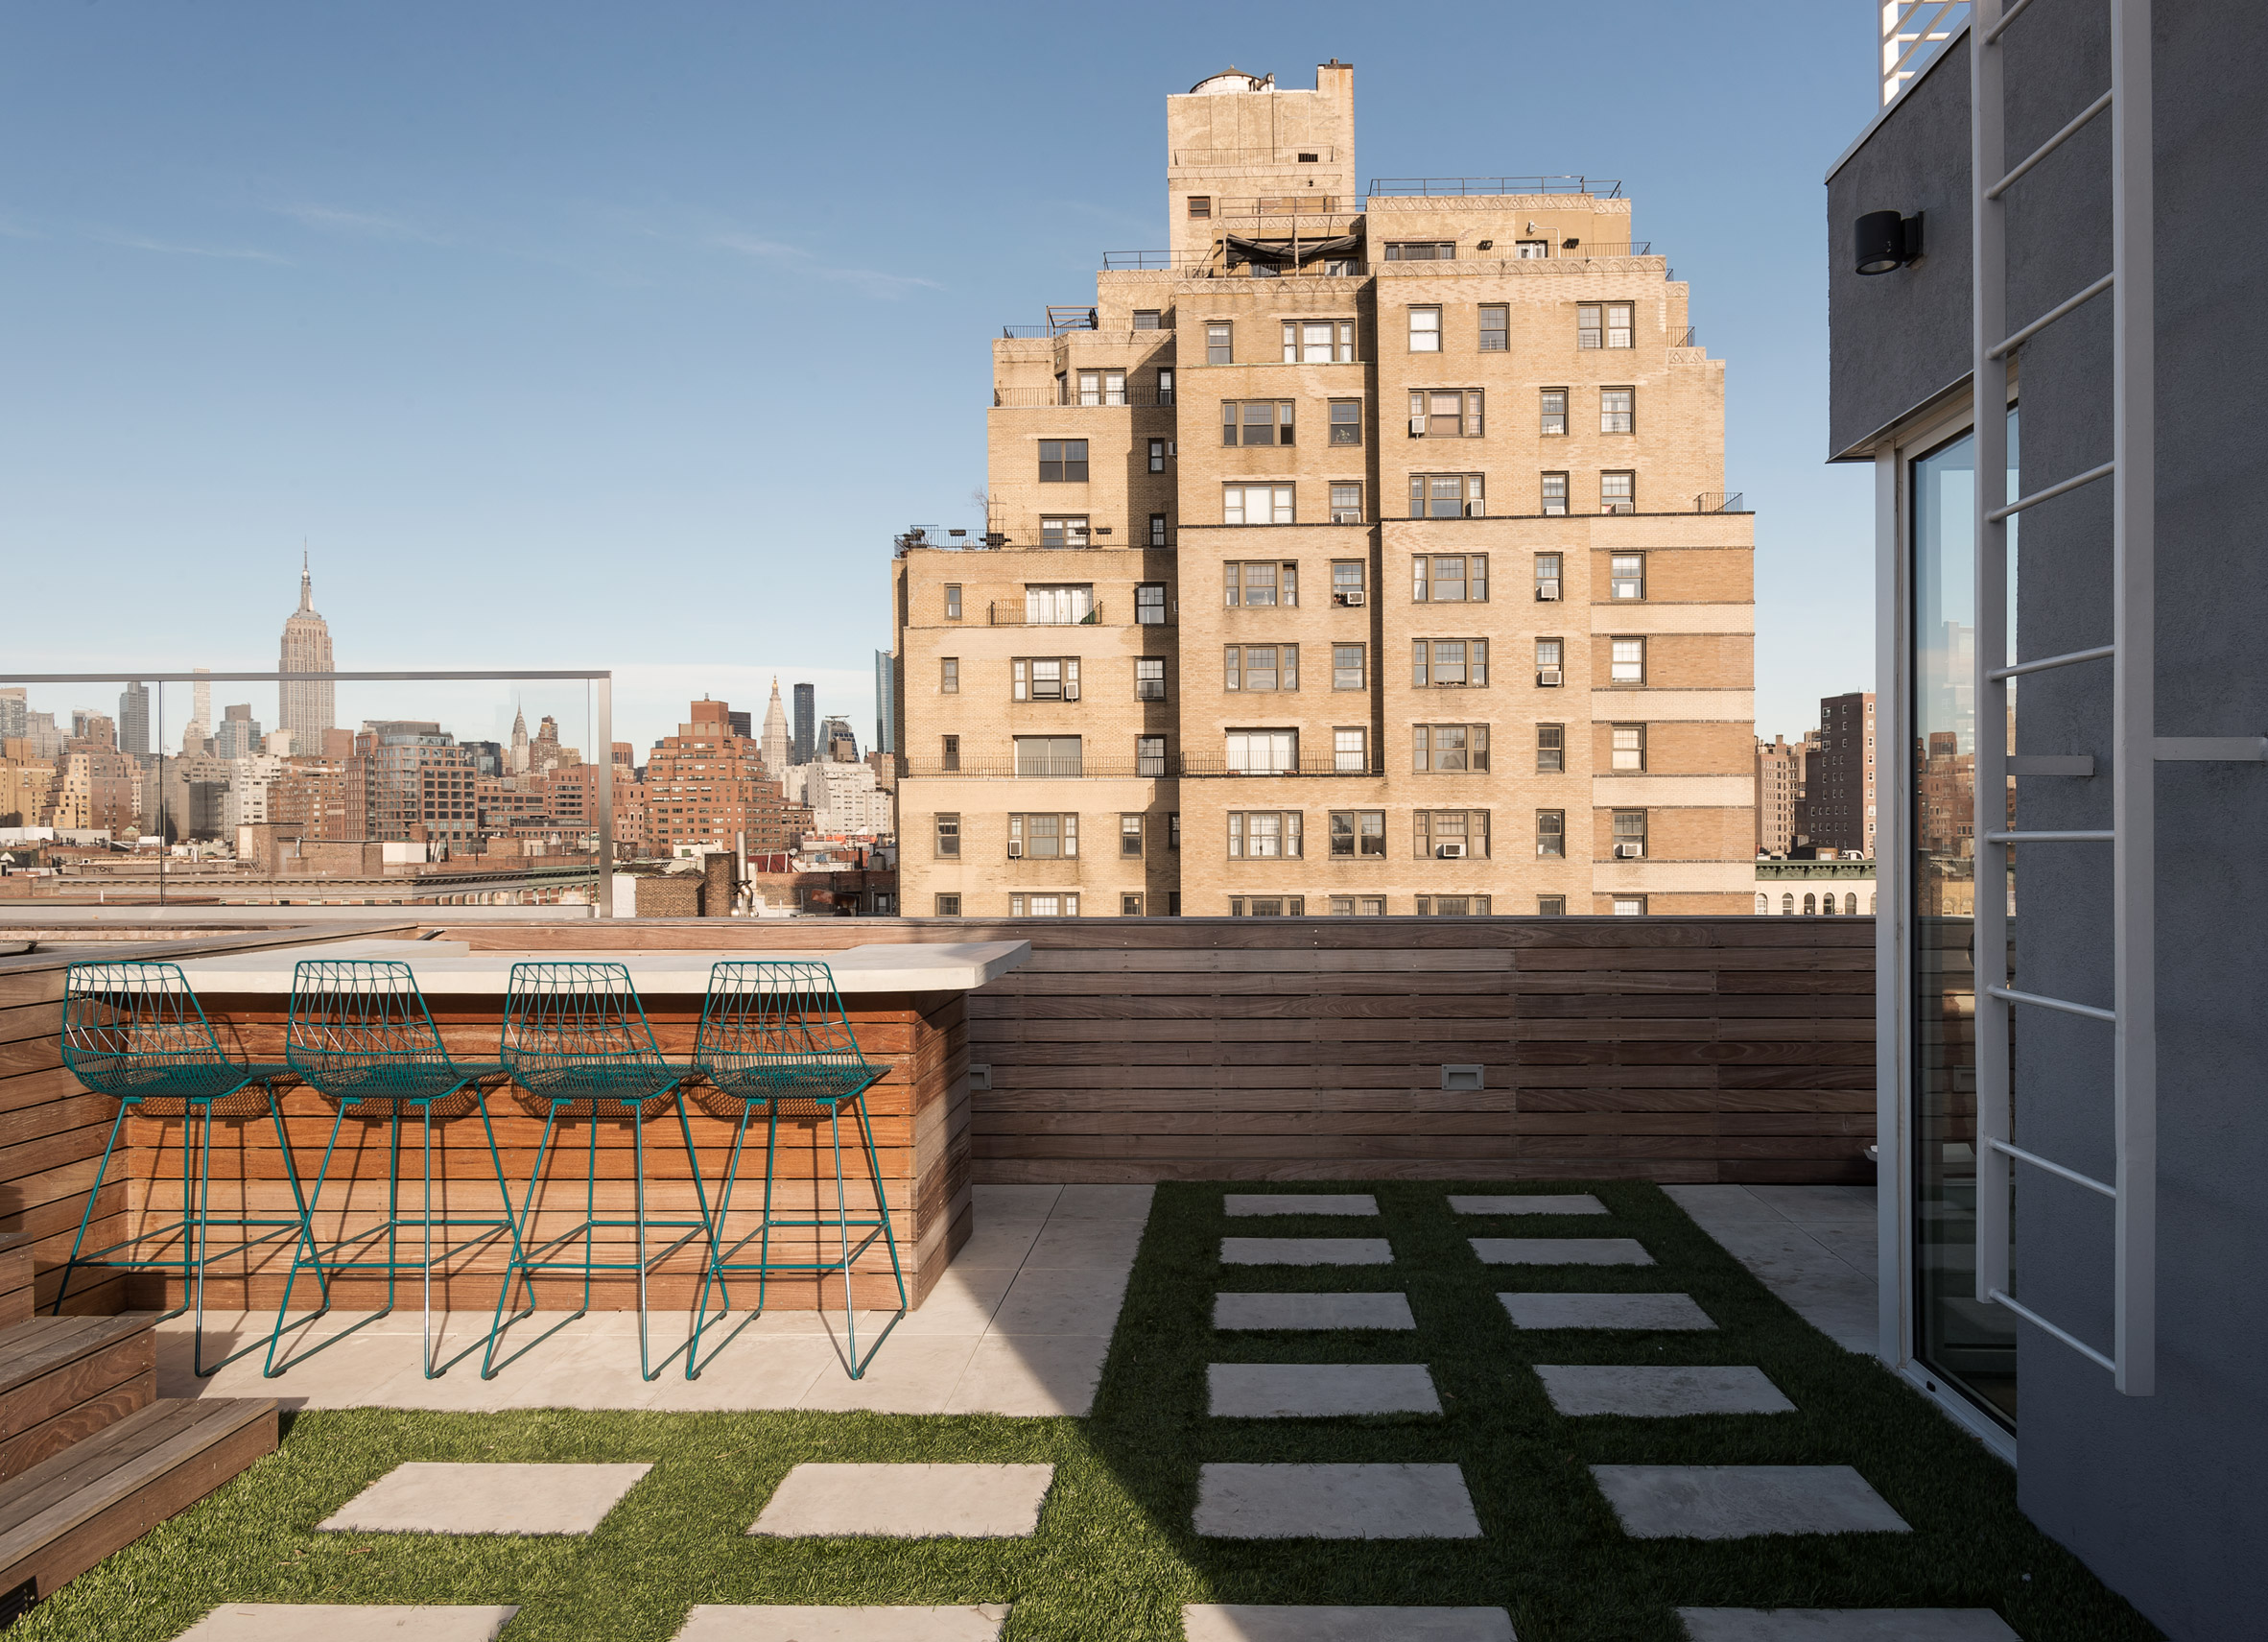 west-village-penthouse-tbd-renovations-interiors-new-york-city-usa_dezeen_2364_col_44.jpg